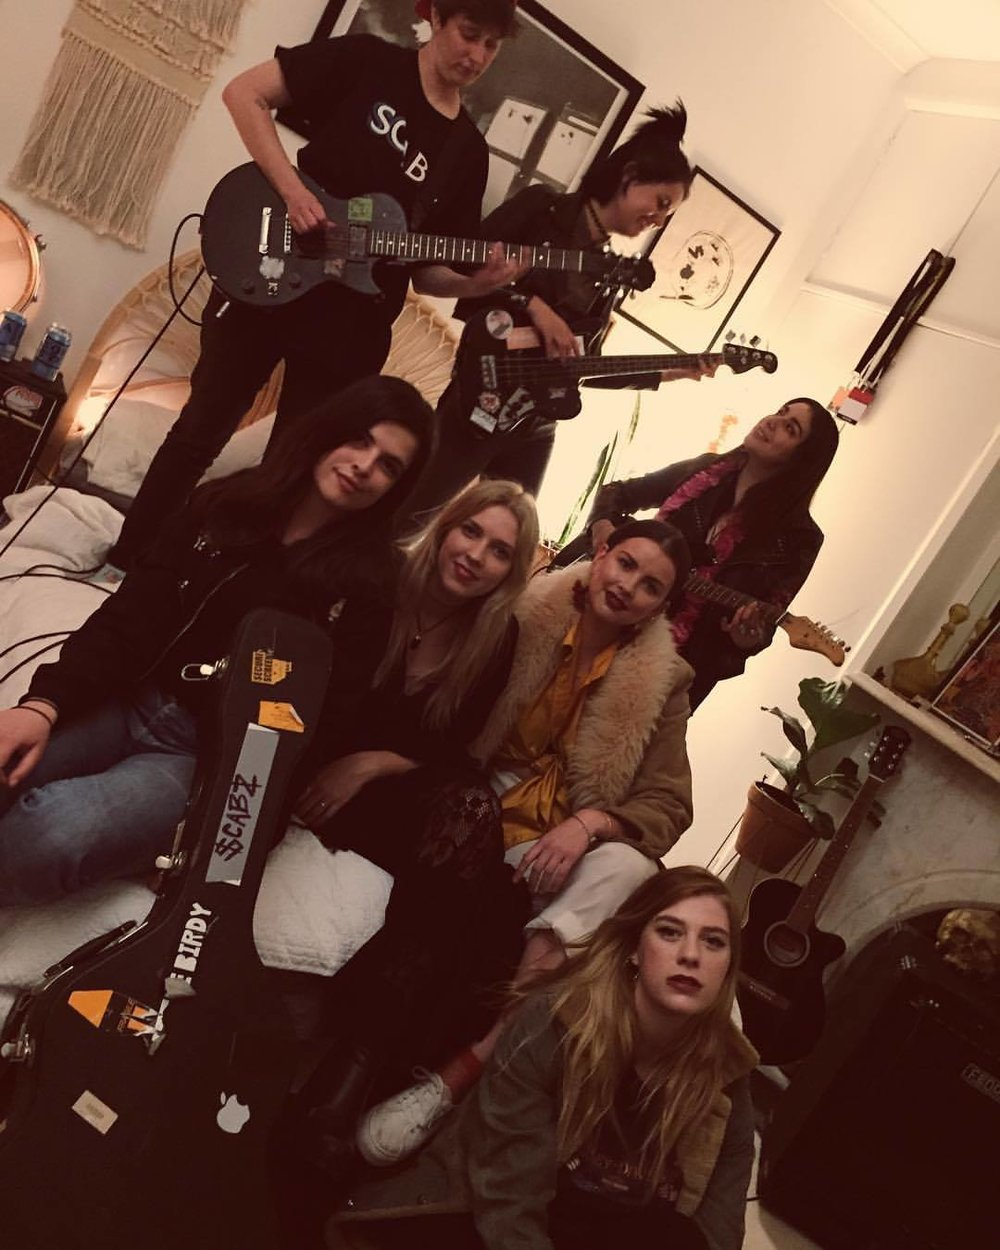 Izzy Hilton,SCABZ,Siobhan Poynton,Jaimee Taylor-Nielsen,Mikaela Stafford,Shalisa Lillian Marie,Ellie Horan,The Nah and Pixie Punto Pistola getting ready for this weekend's awesomeness. Image via Facebook/CovenPresents